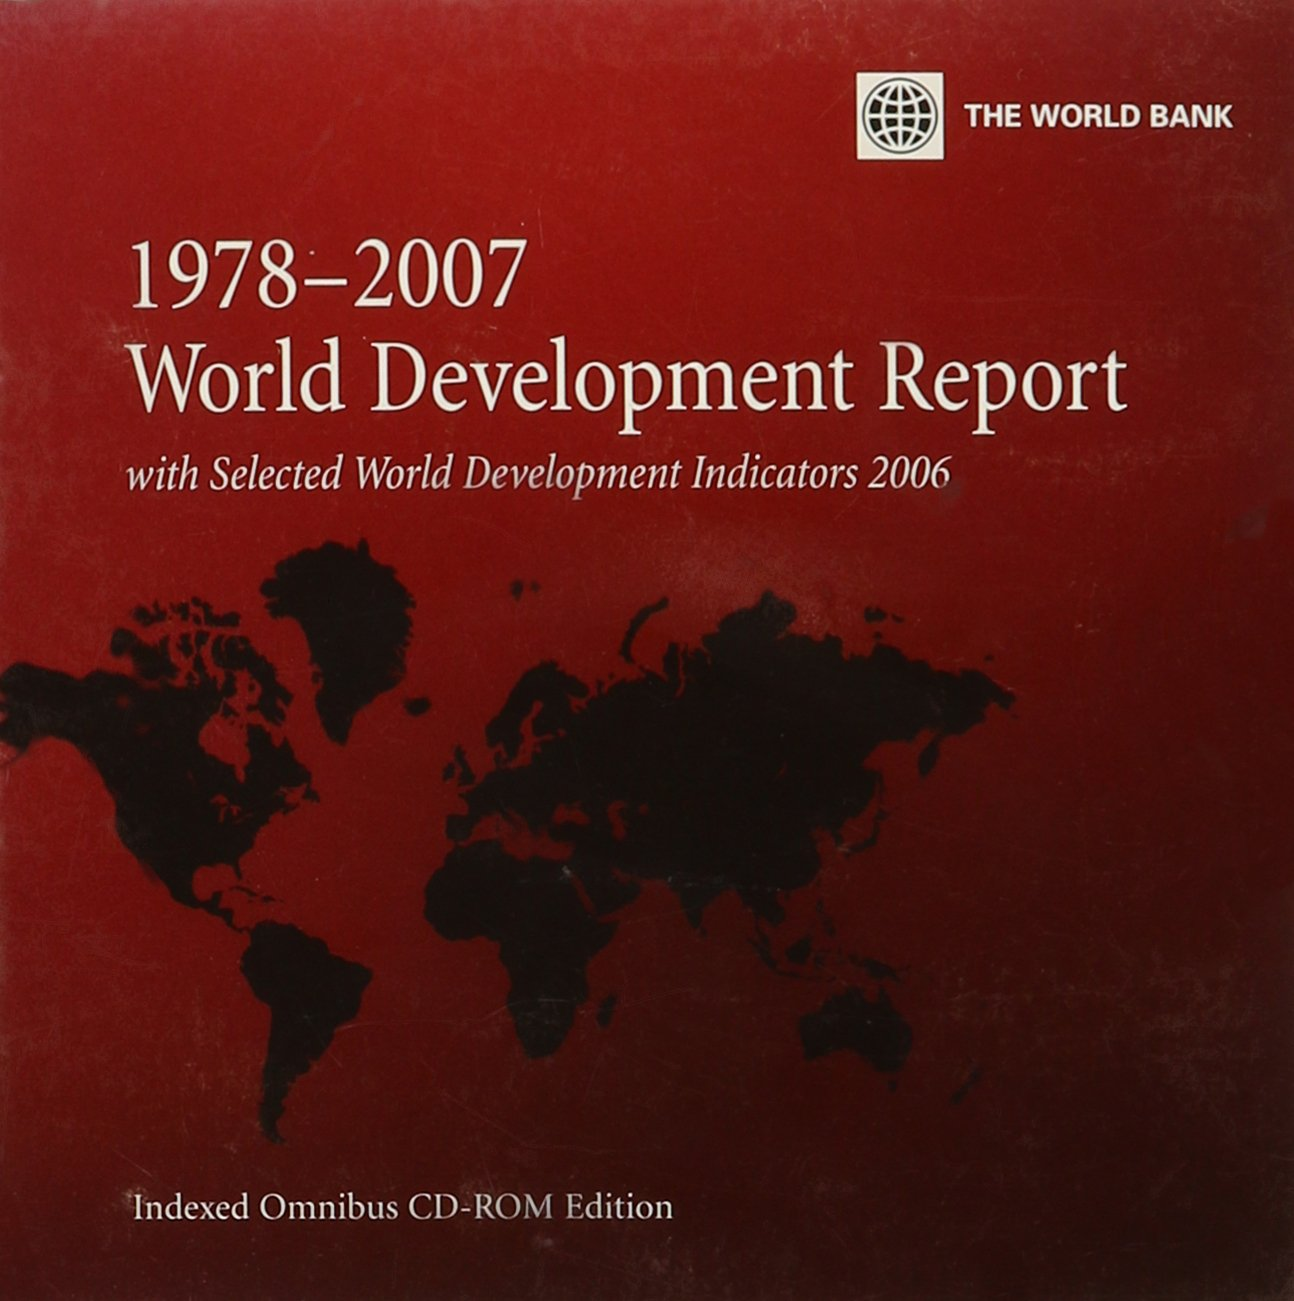 World Development Report 1978-2007 With Selected World Development Indicators 2006 (Multiple User): Indexed Omnibus (World Development Report)